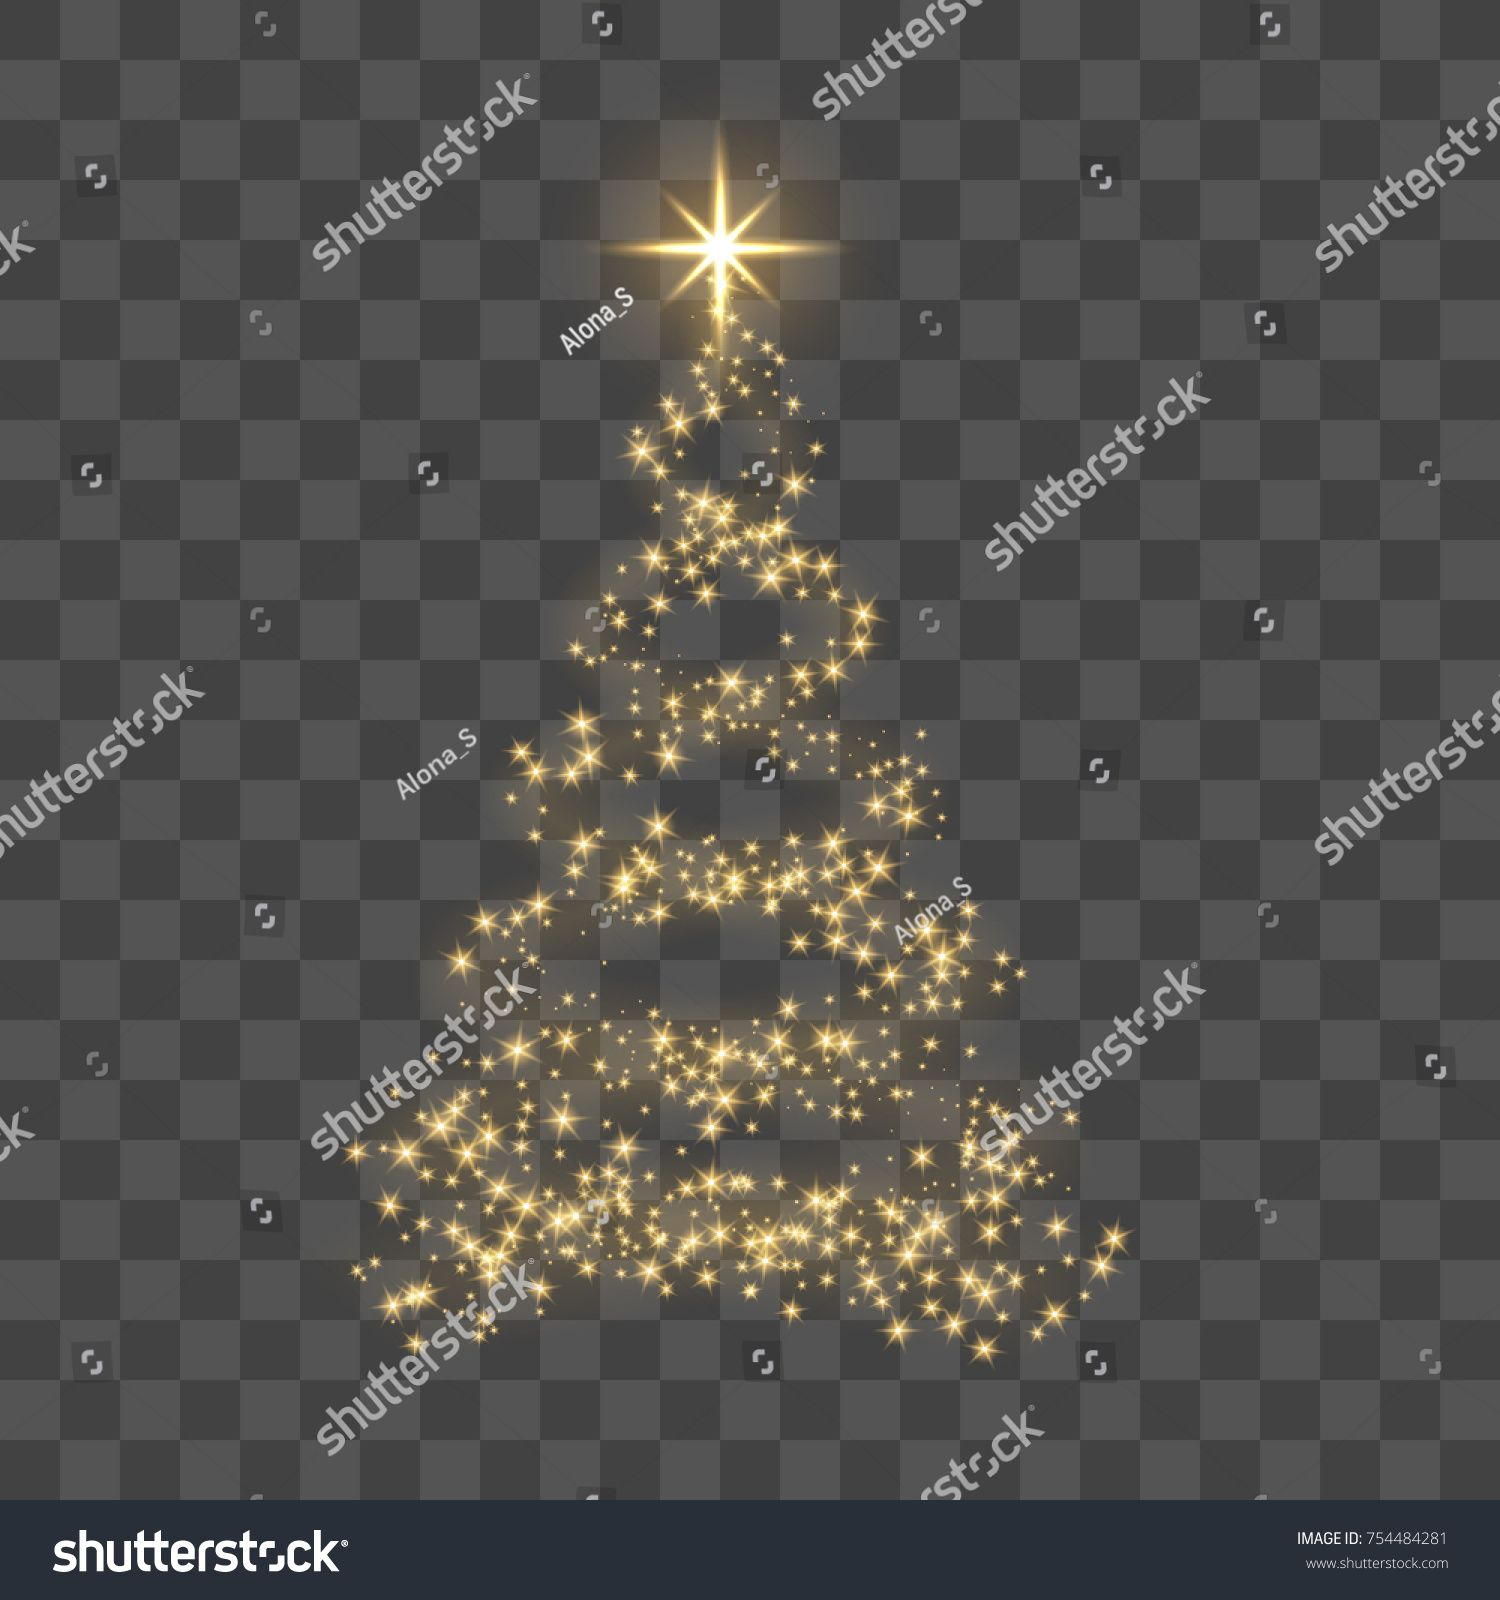 Christmas Tree On Transparent Background Gold Christmas Tree As Symbol Of Happy New Year Merry Christmas Ho Gold Christmas Tree Christmas Tree Gold Christmas